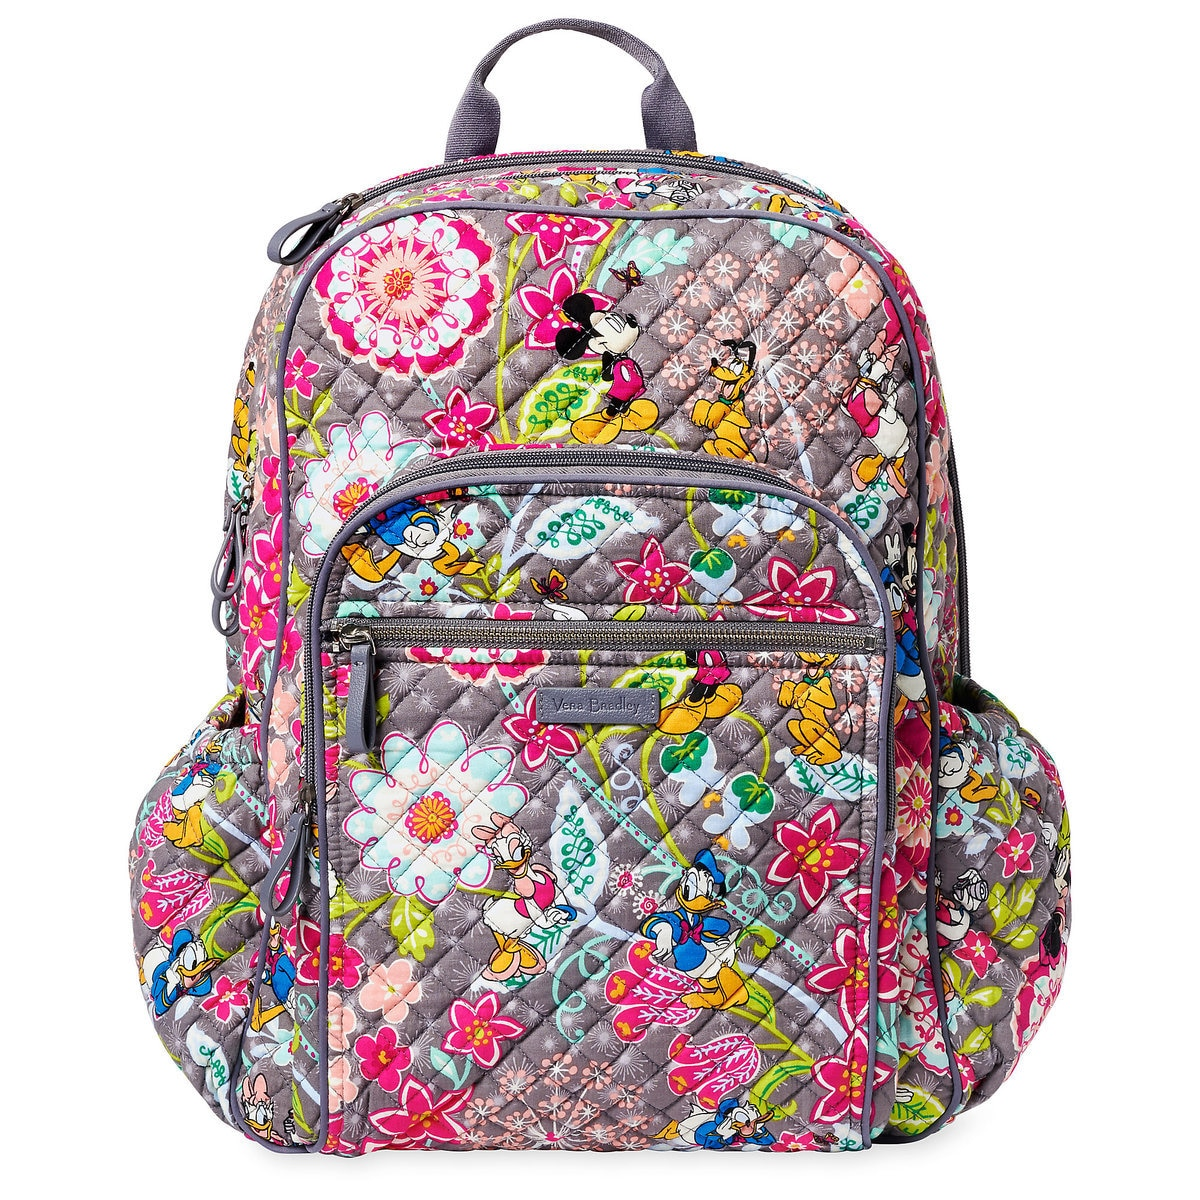 5ad7592de70 Product Image of Mickey Mouse and Friends Campus Backpack by Vera Bradley    1